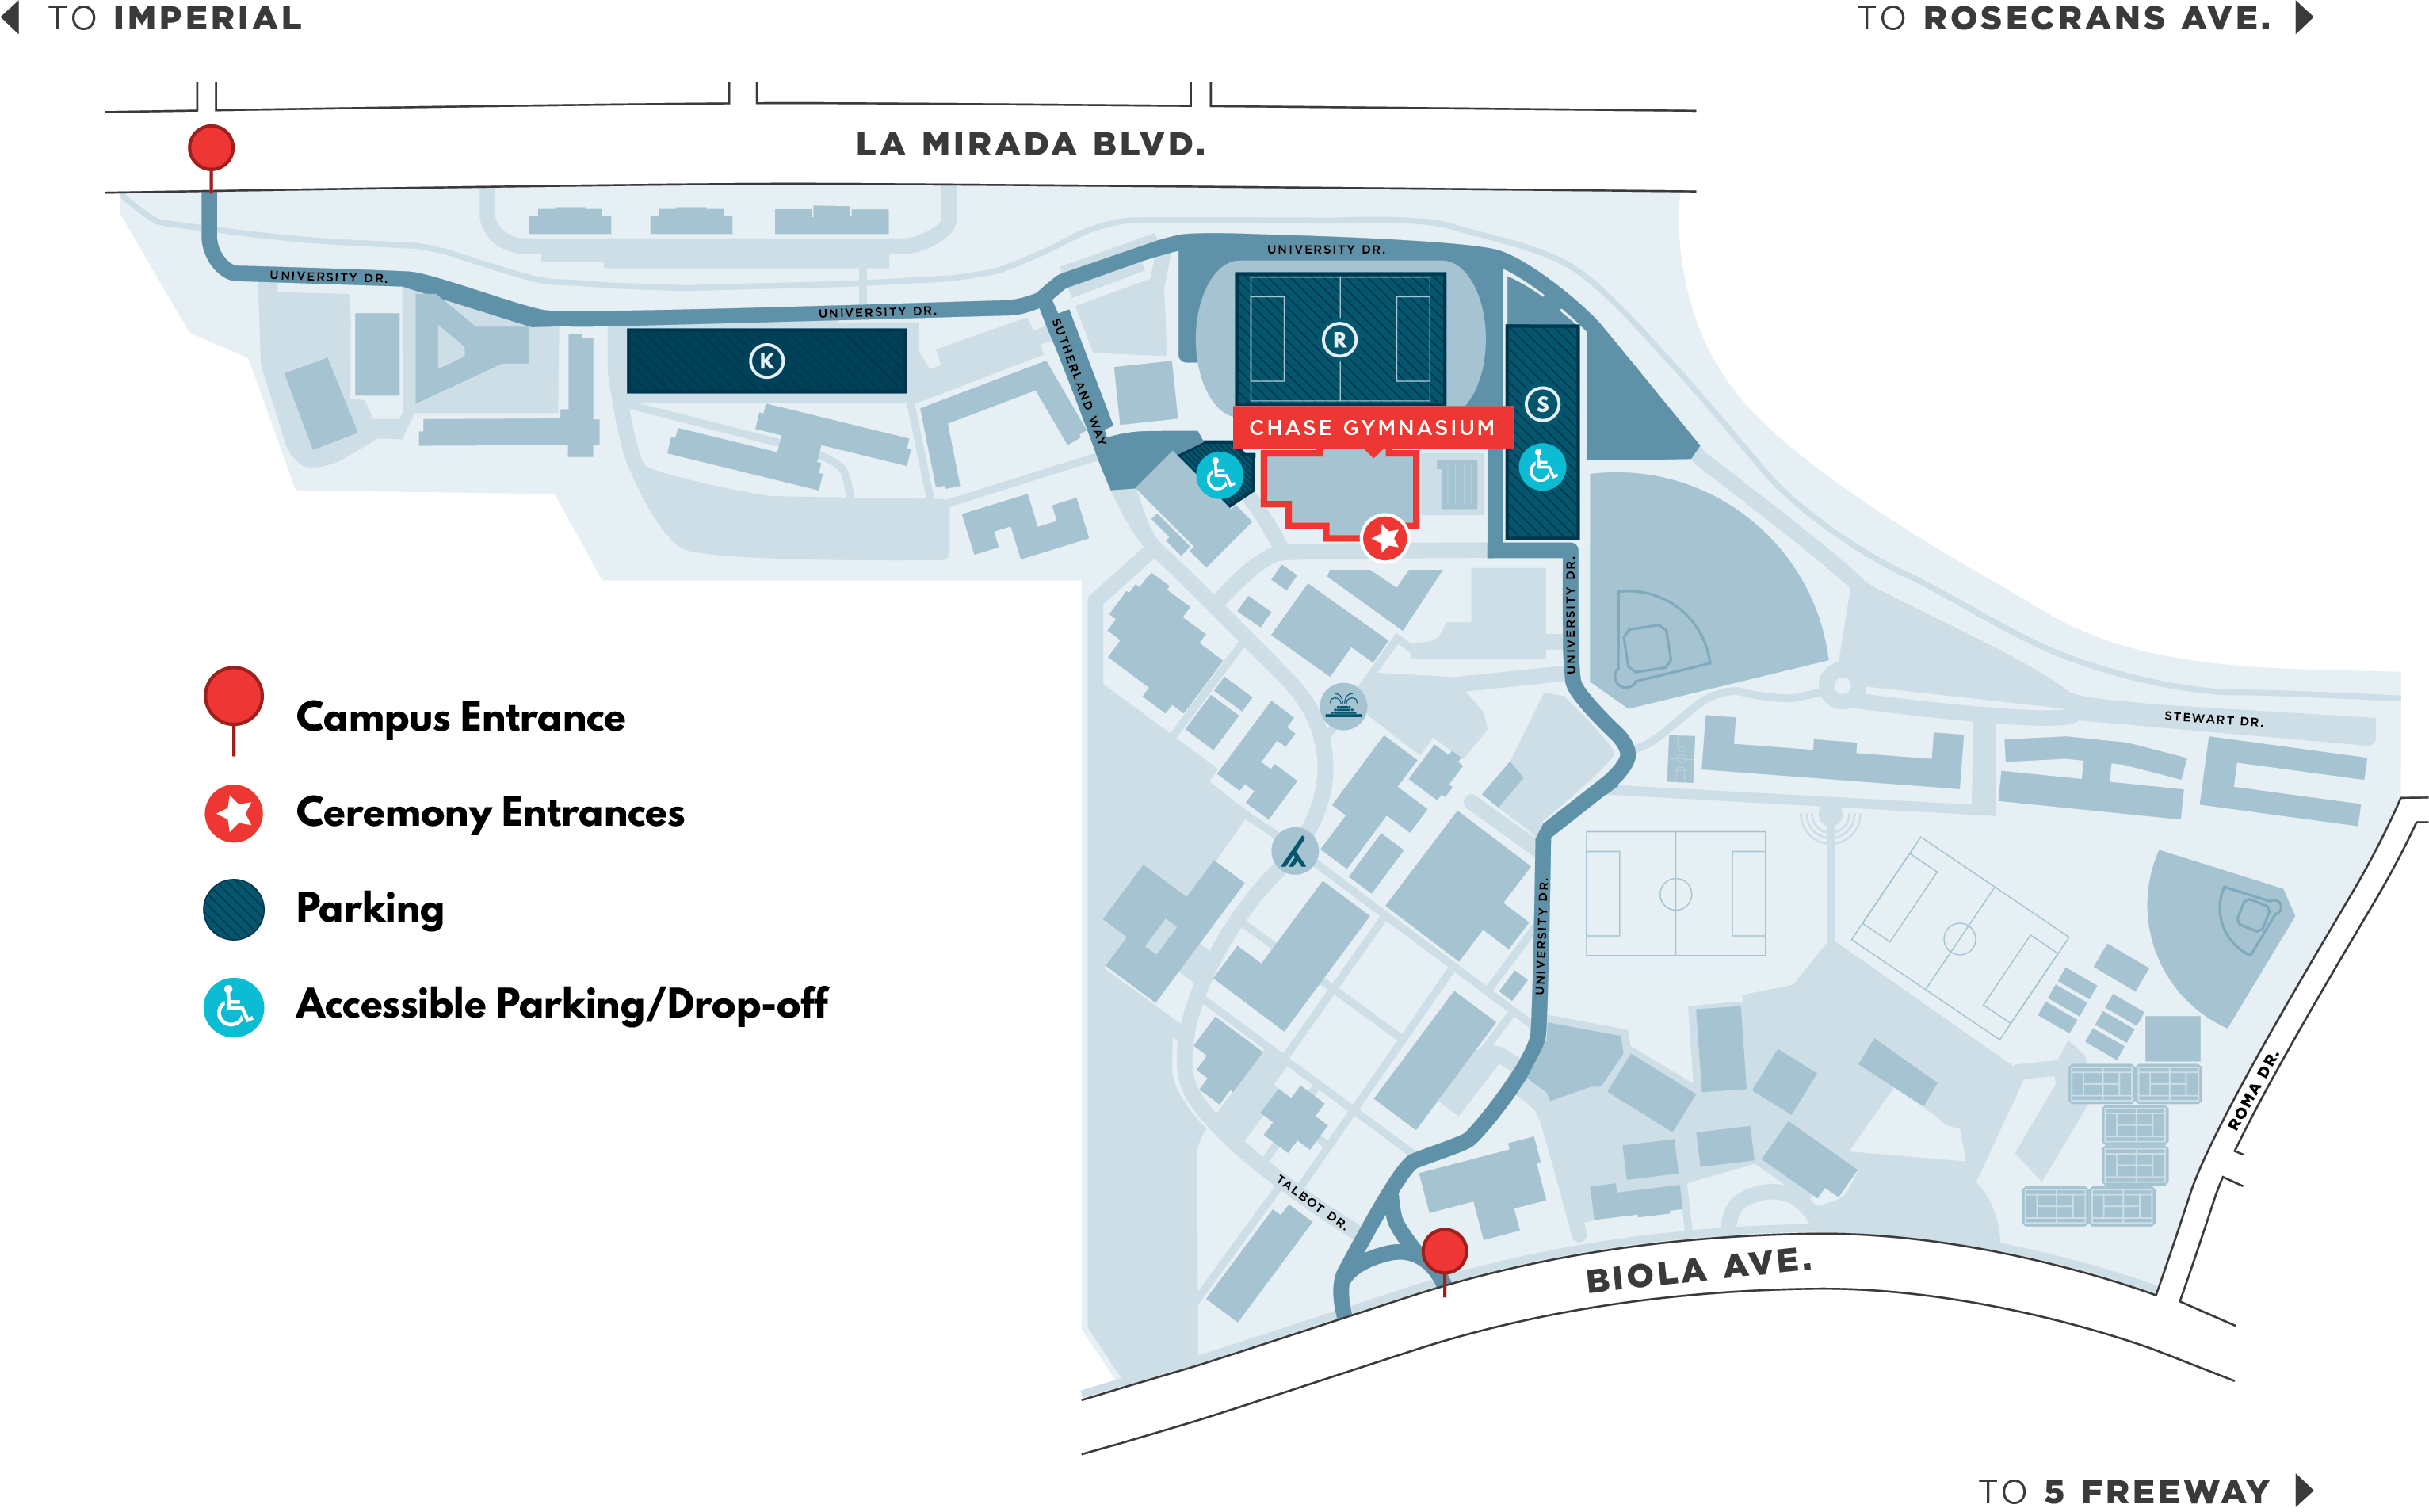 Fall Commencement Map showing campus entrances, ceremony entrances, parking locations and accessible parking and drop off locations